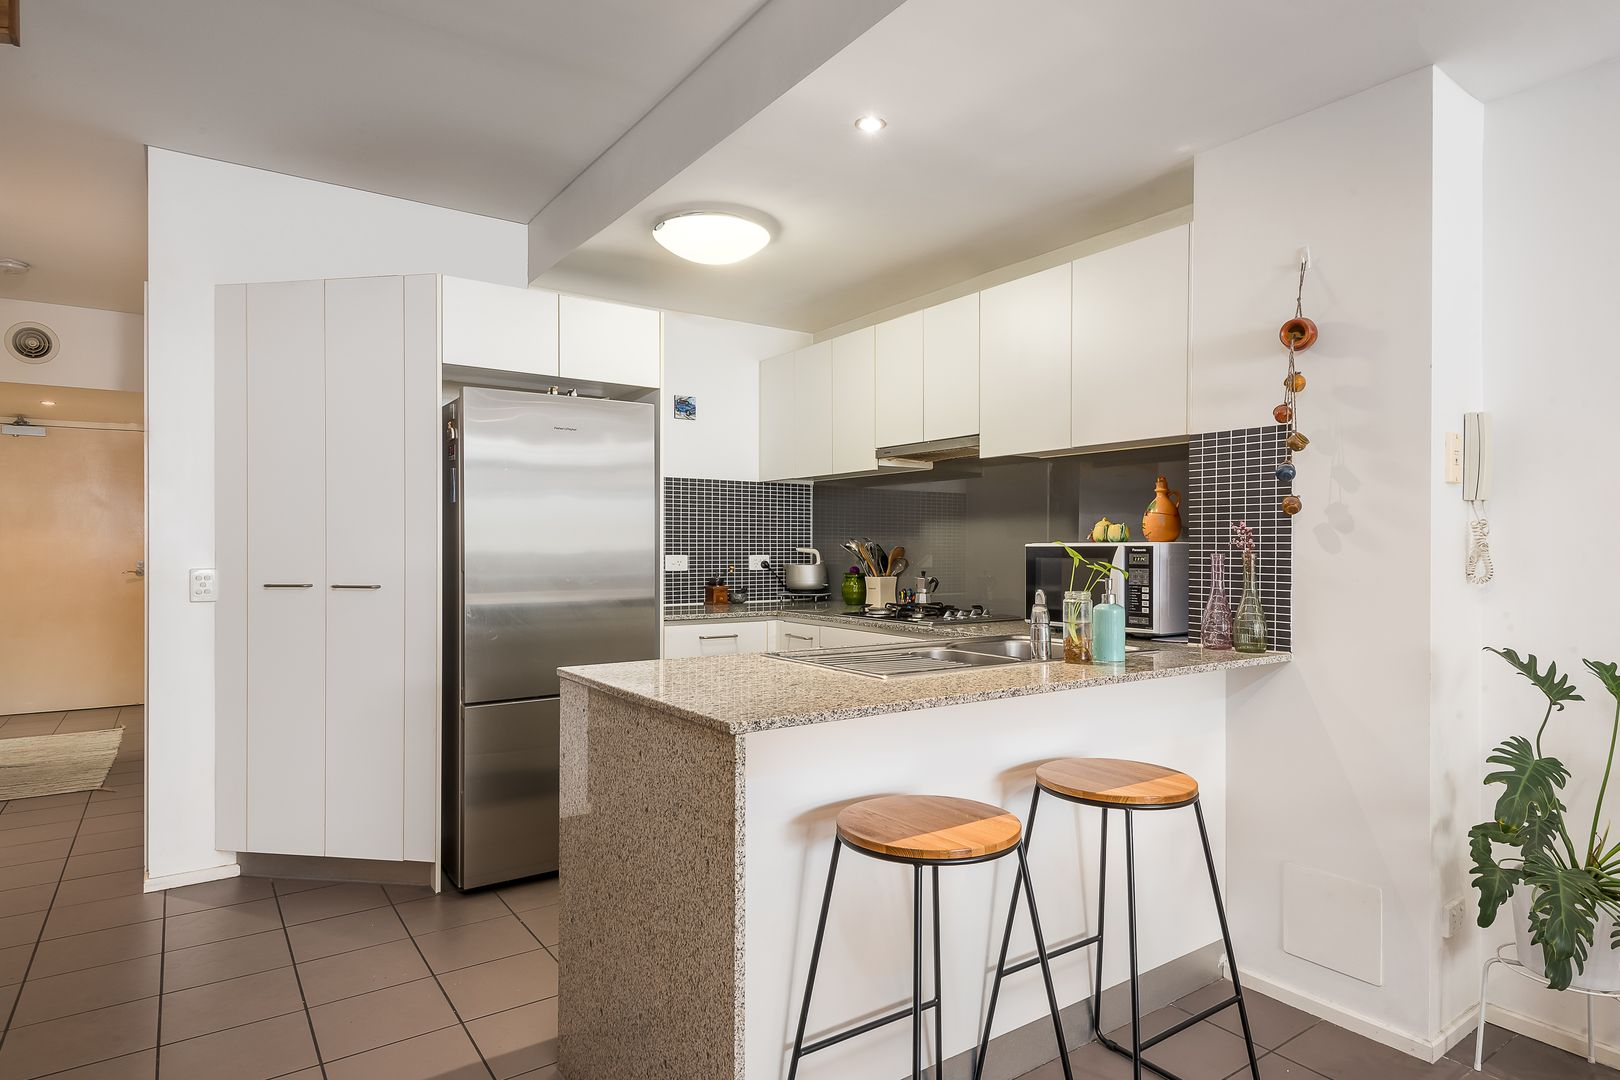 19/9 Doggett Street, Fortitude Valley QLD 4006, Image 2